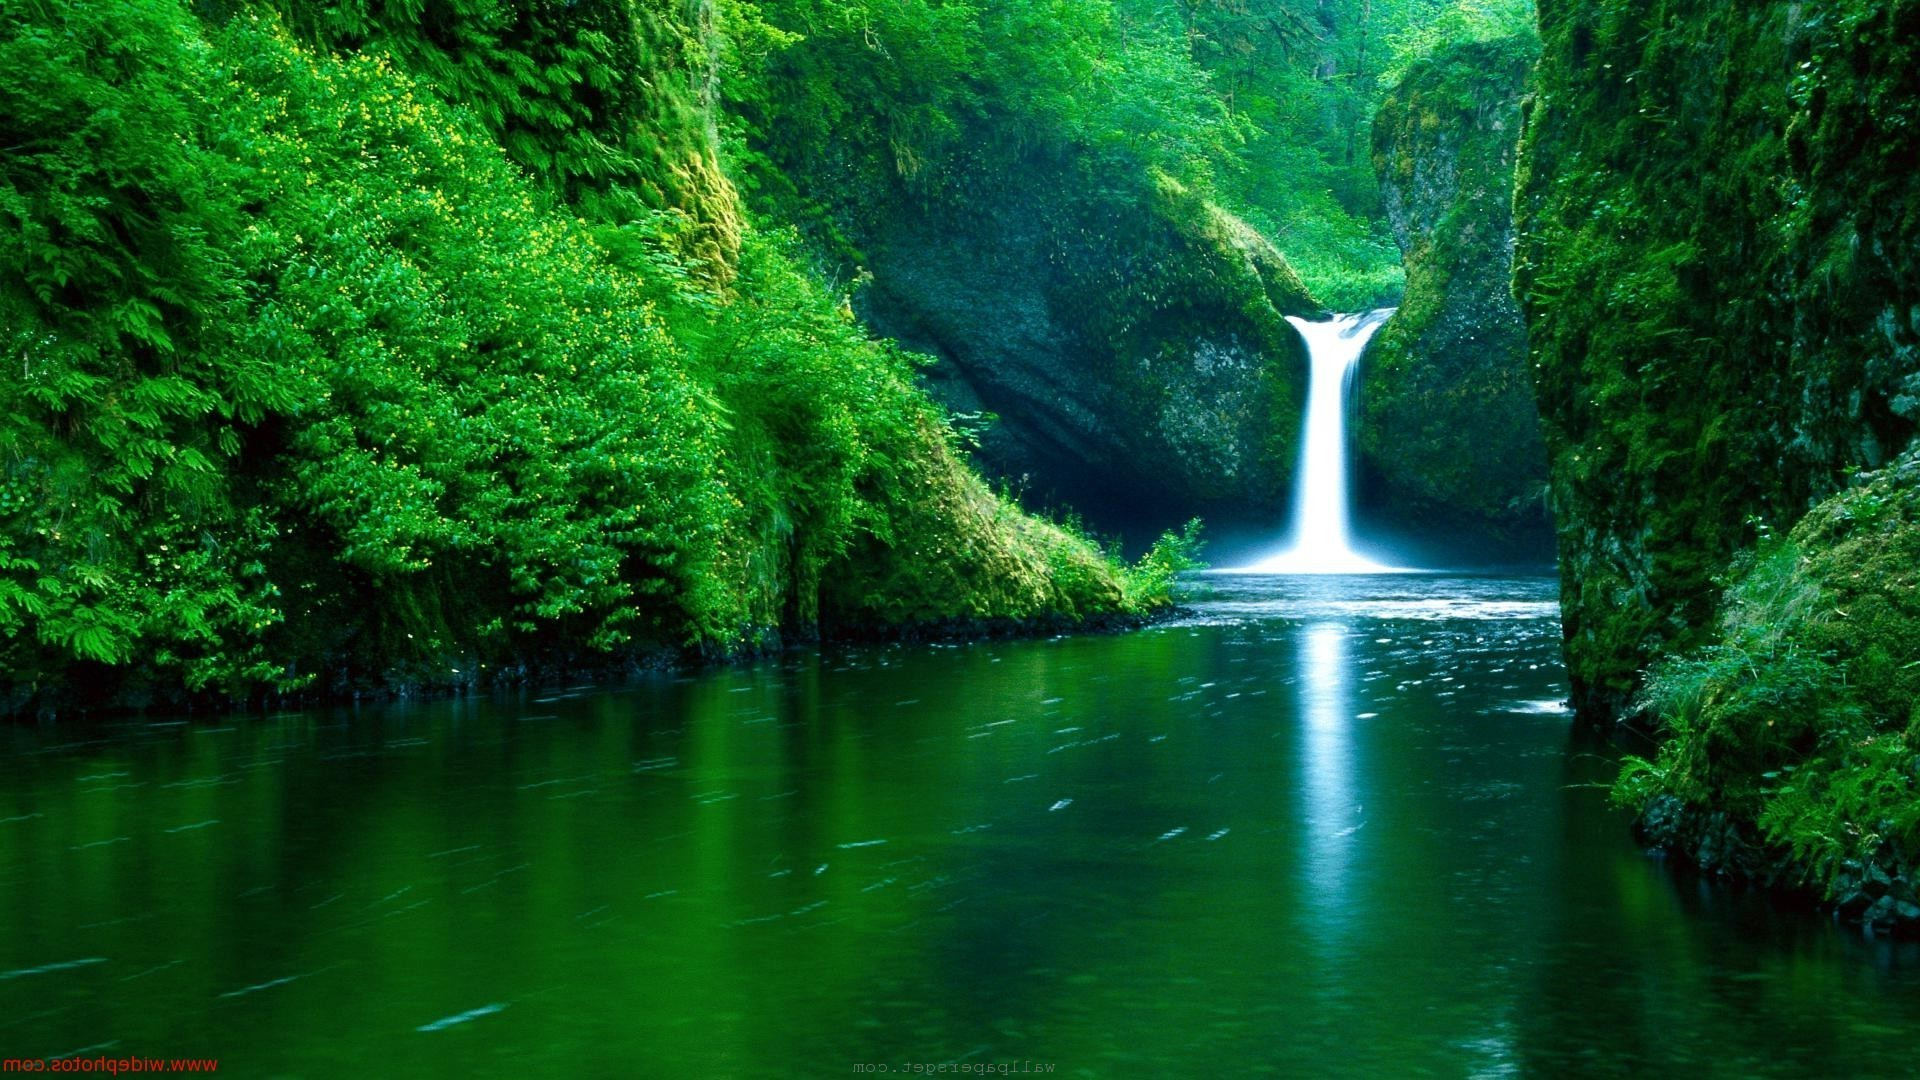 nature wallpapers and screensavers (67+ images)